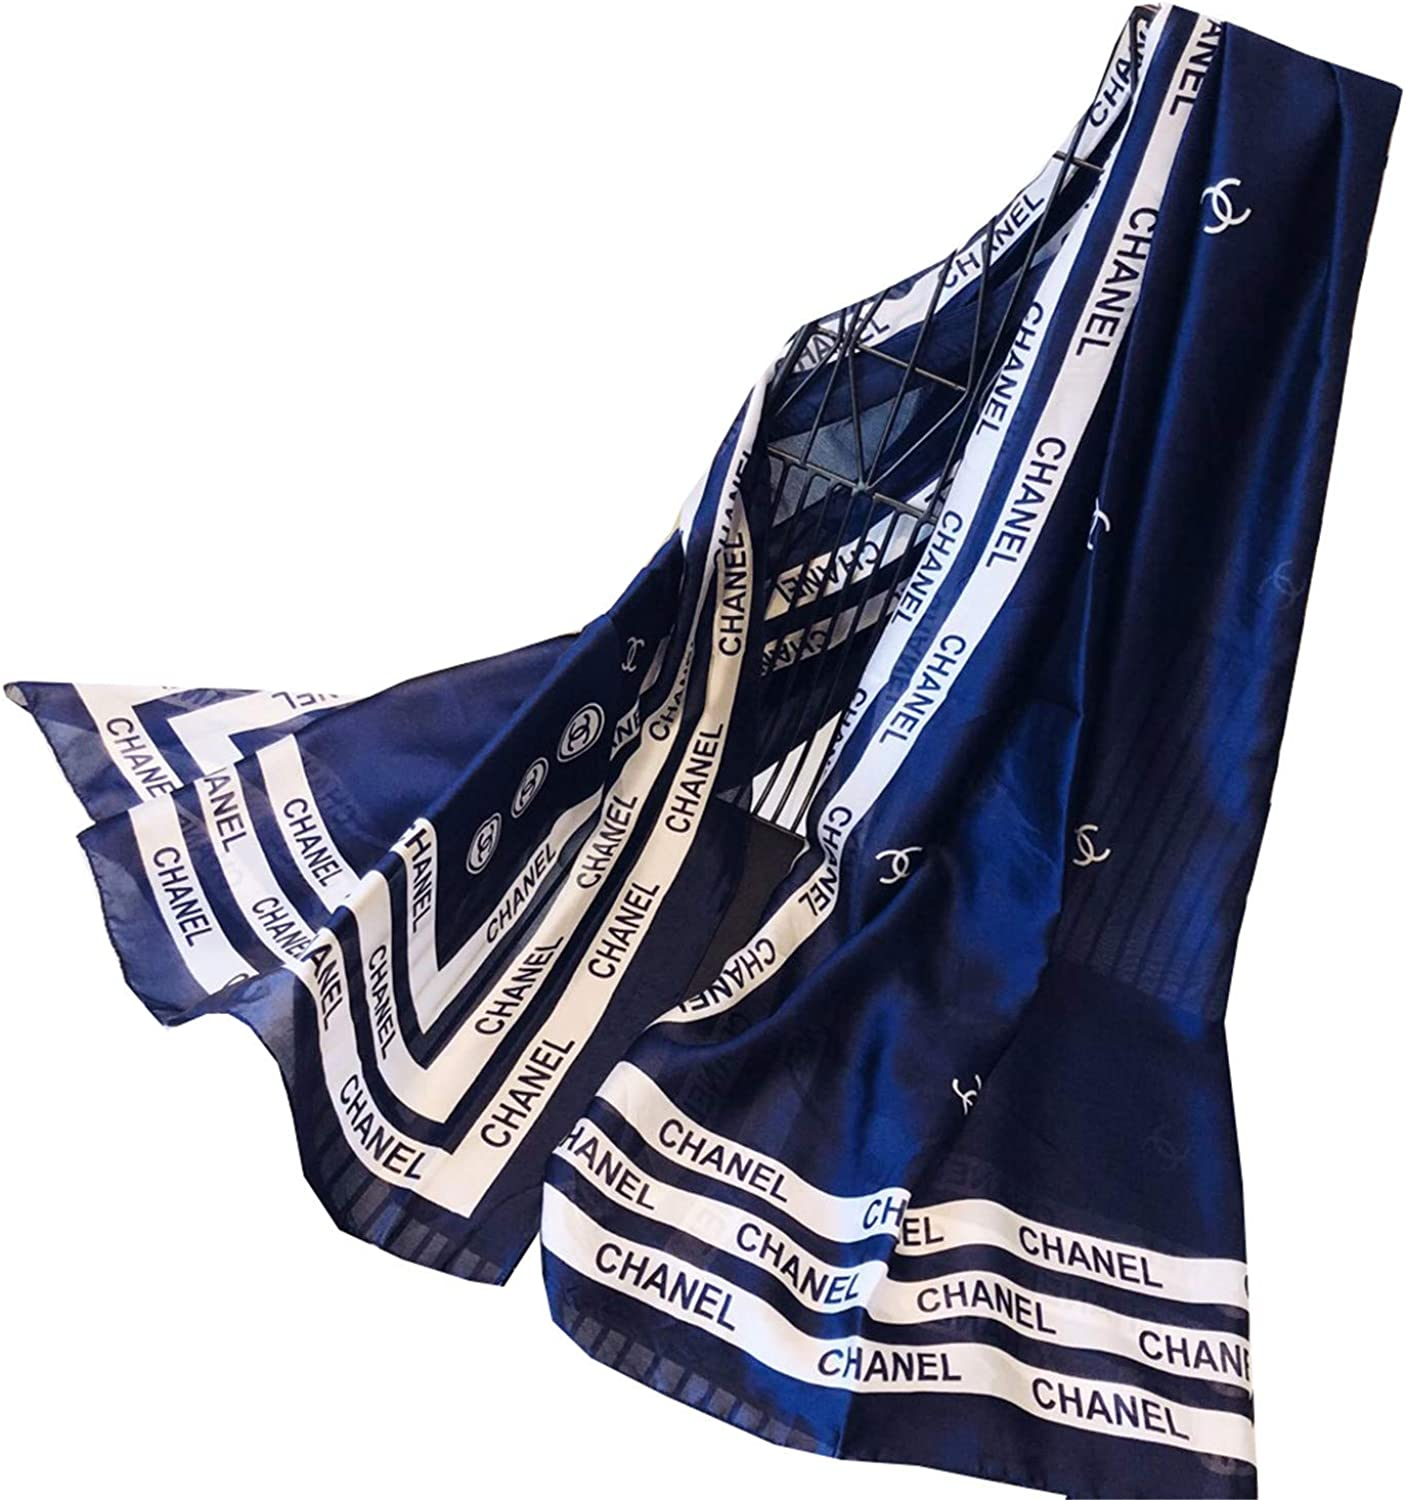 Fashion luxury silk scarves are Max 51% OFF suitable for and women fo Max 56% OFF in men